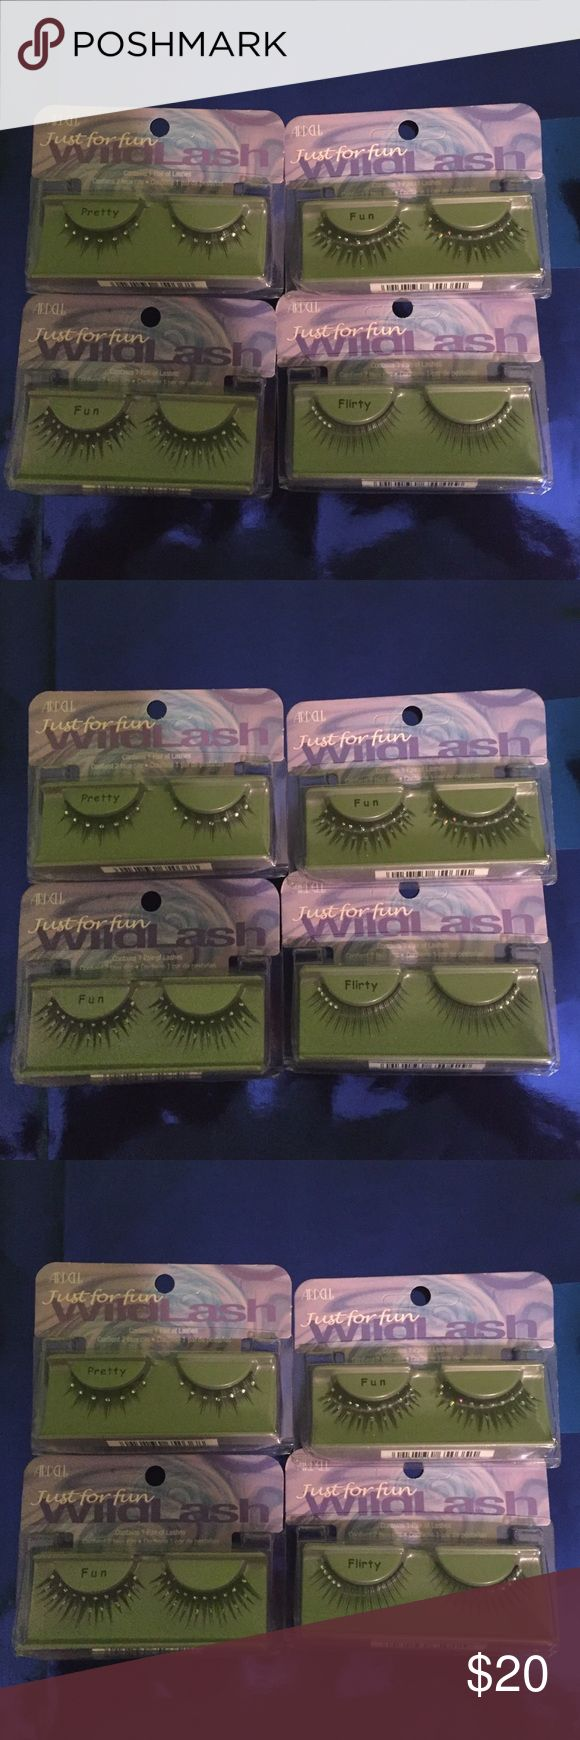 PARTY PARTY PARTY!! Adell Just for fun lashes lot 2 Fun, 1 Pretty and 1 Flirty lashes with sparkling stones on the lashes. Great for parties or fun event. Ardell Makeup False Eyelashes